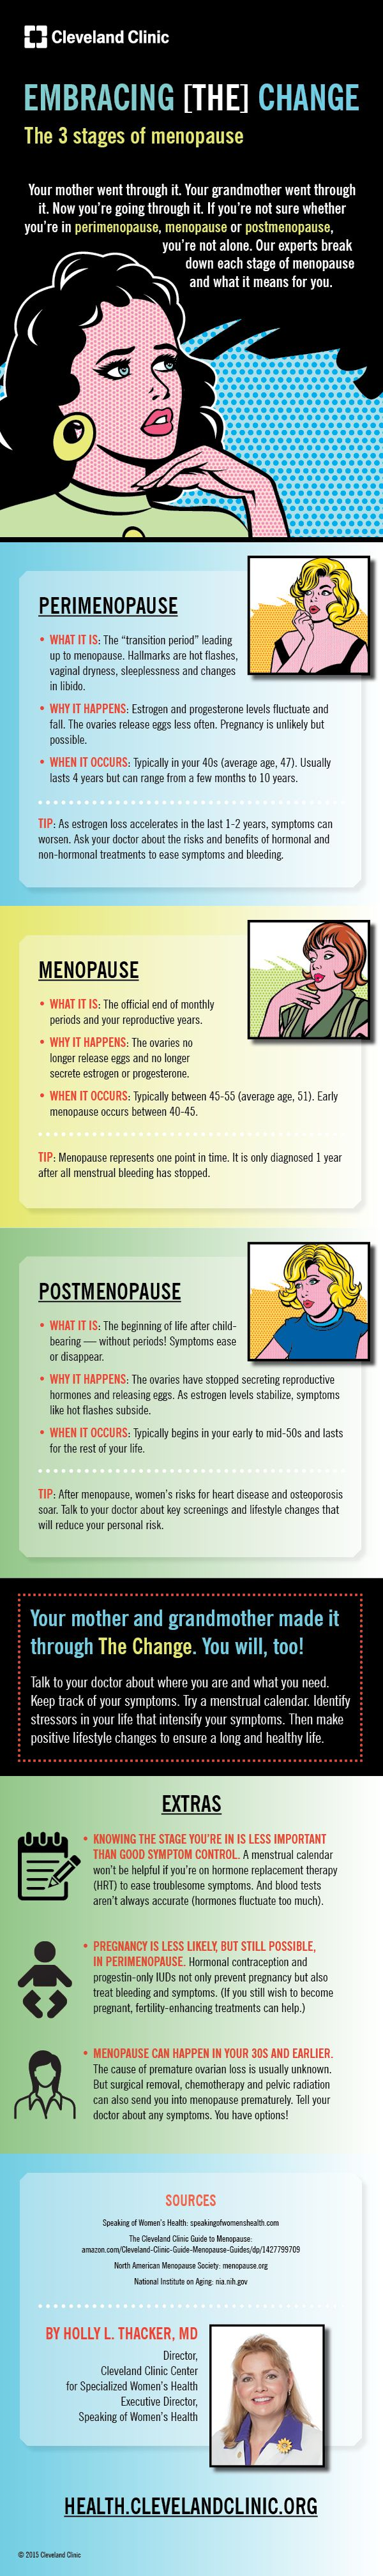 3 stages of #menopause and how affect you. #infographic #women